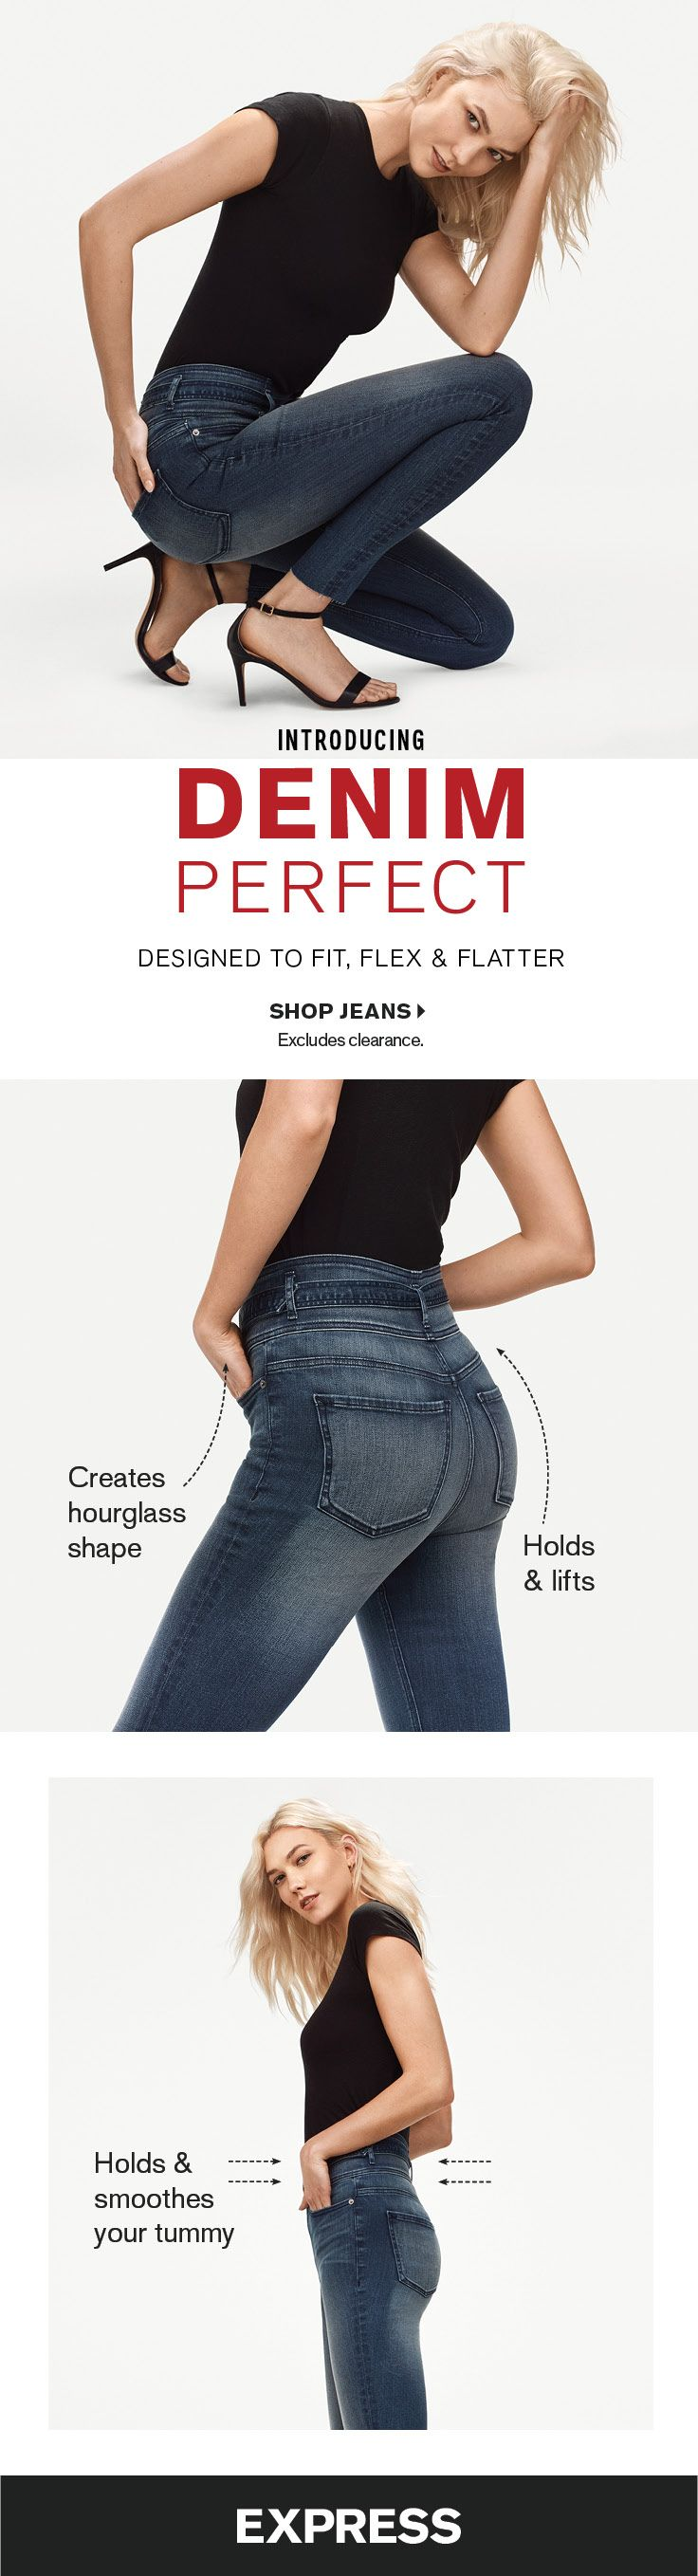 The best jeans to flatter your body type are at Express. Denim Perfect jeans are designed to fit flex and flatter your body. Slimming jean technology creates an hourglass shape lifts your butt and slims your waist and extra stretch keeps you comfortable all day. See for yourself! Shop in-stores or at express.com.